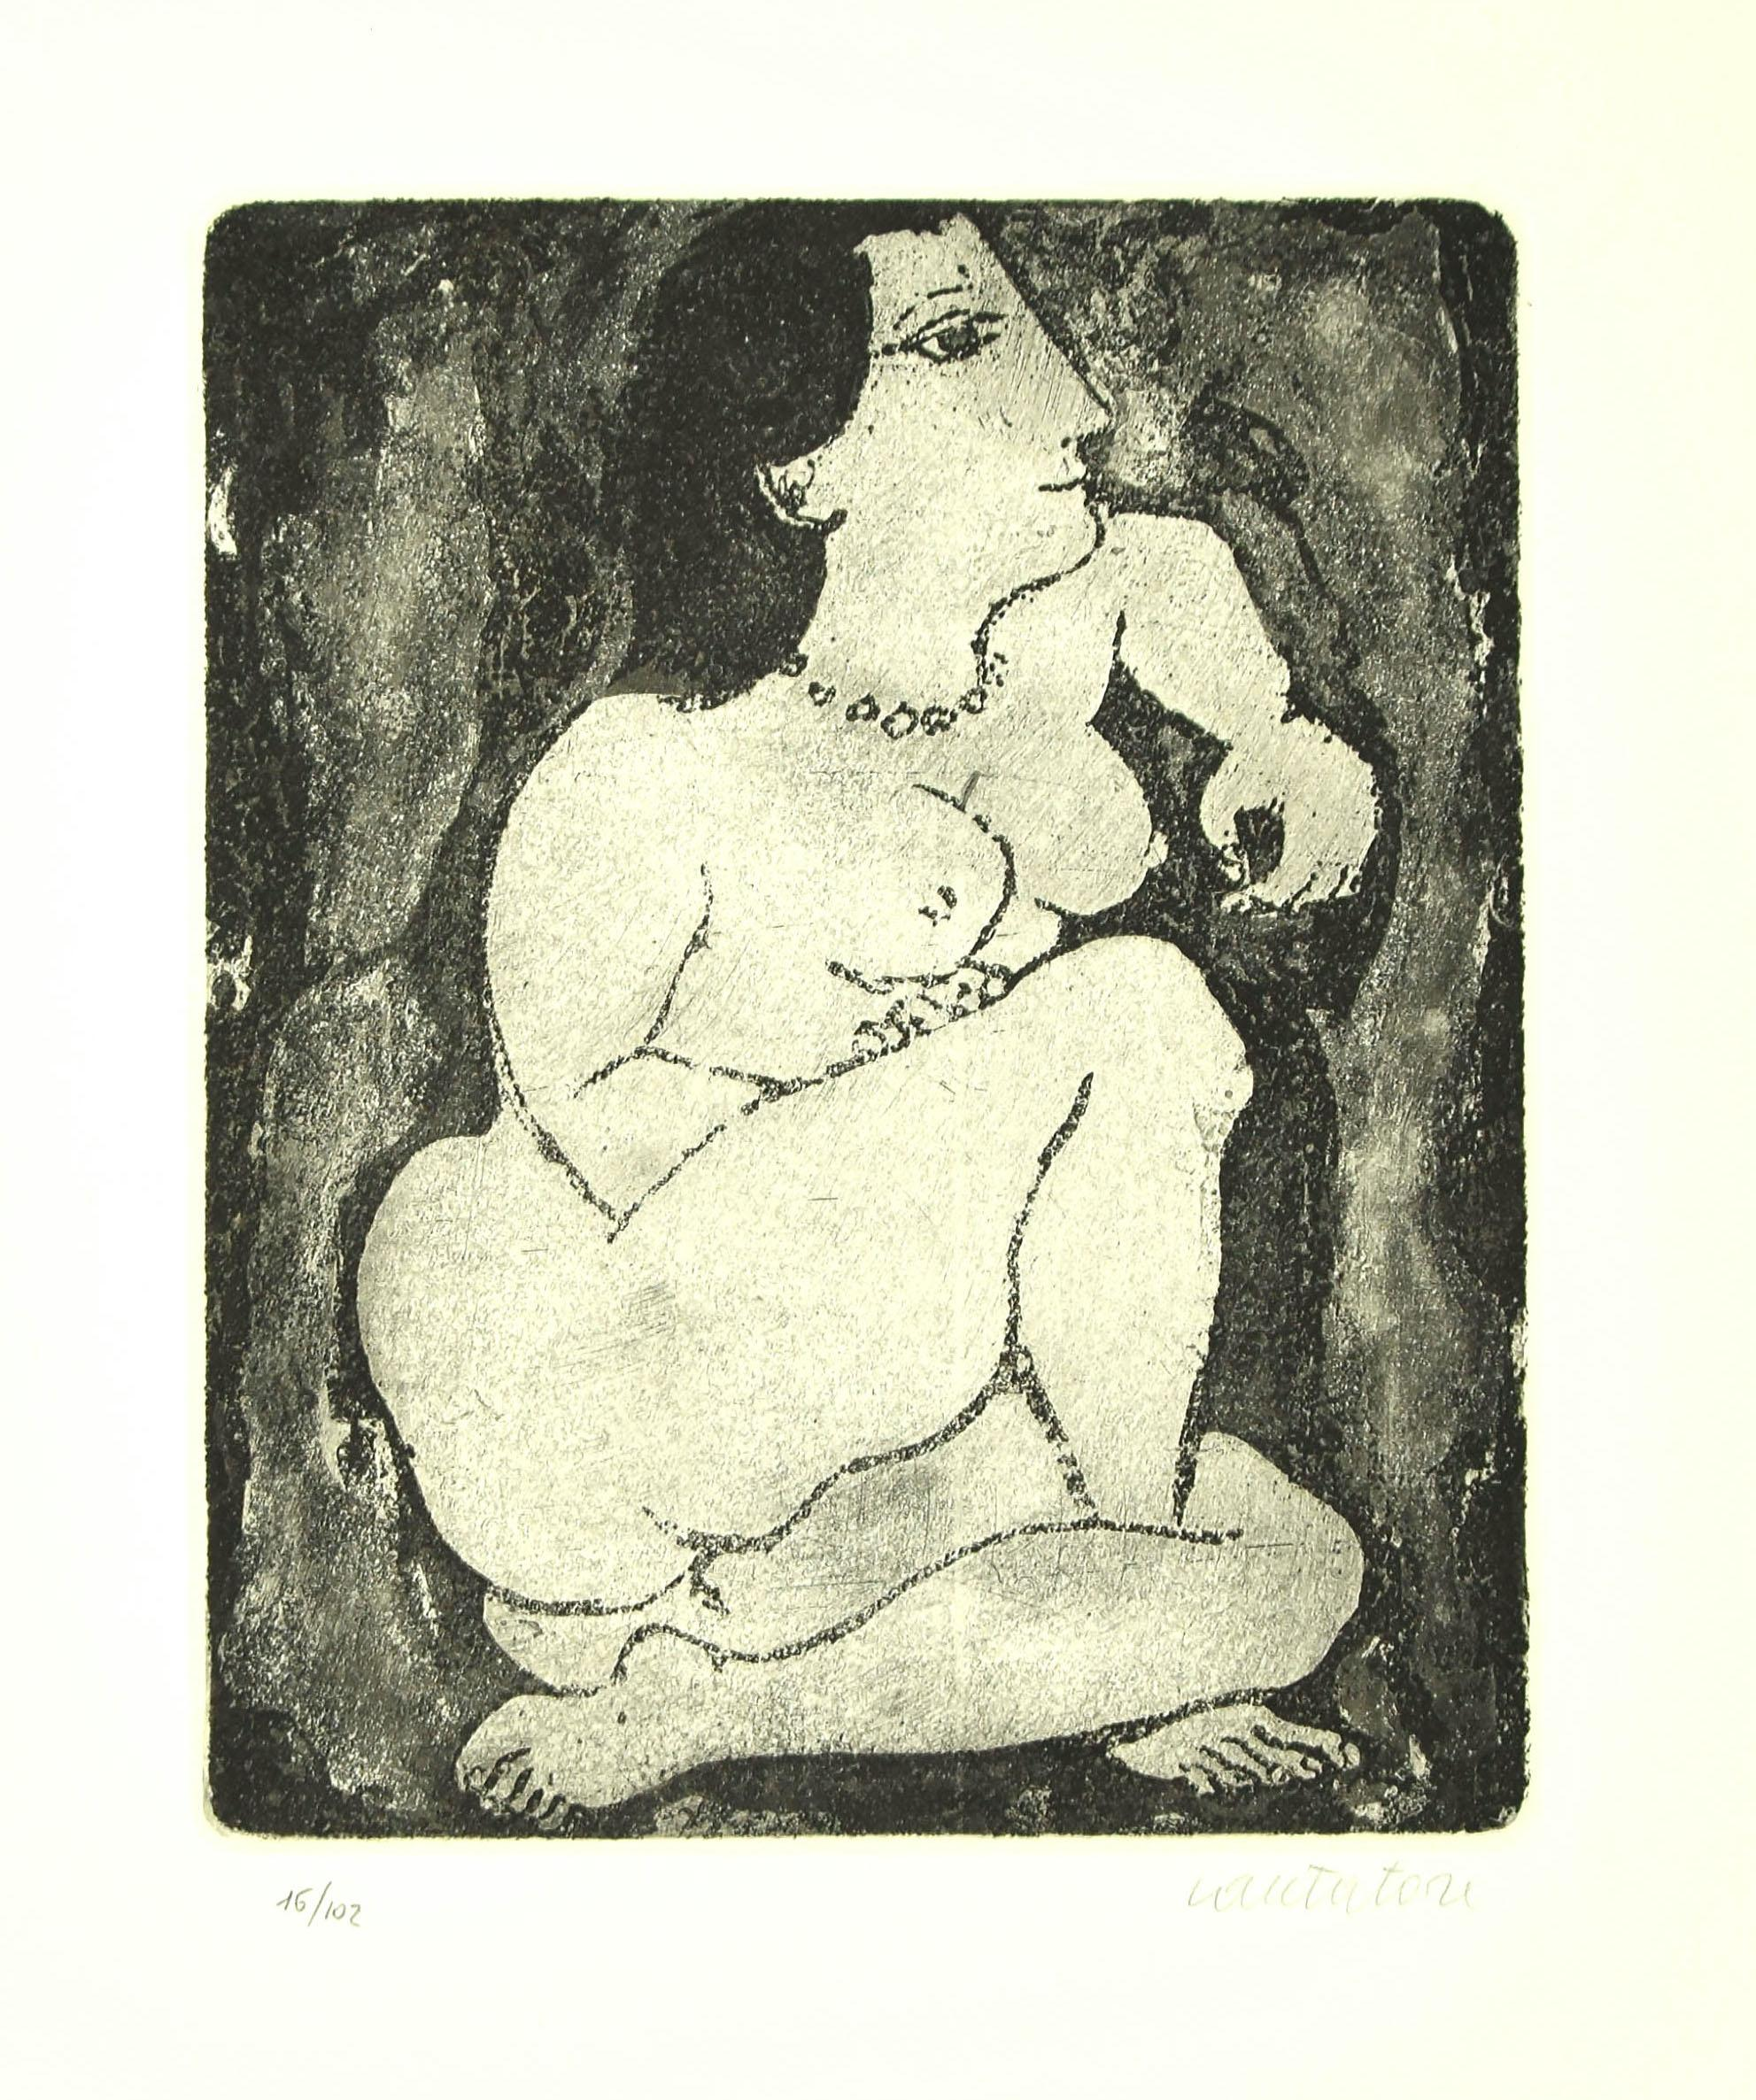 Nude - Original Etching by D. Cantatore - 1964